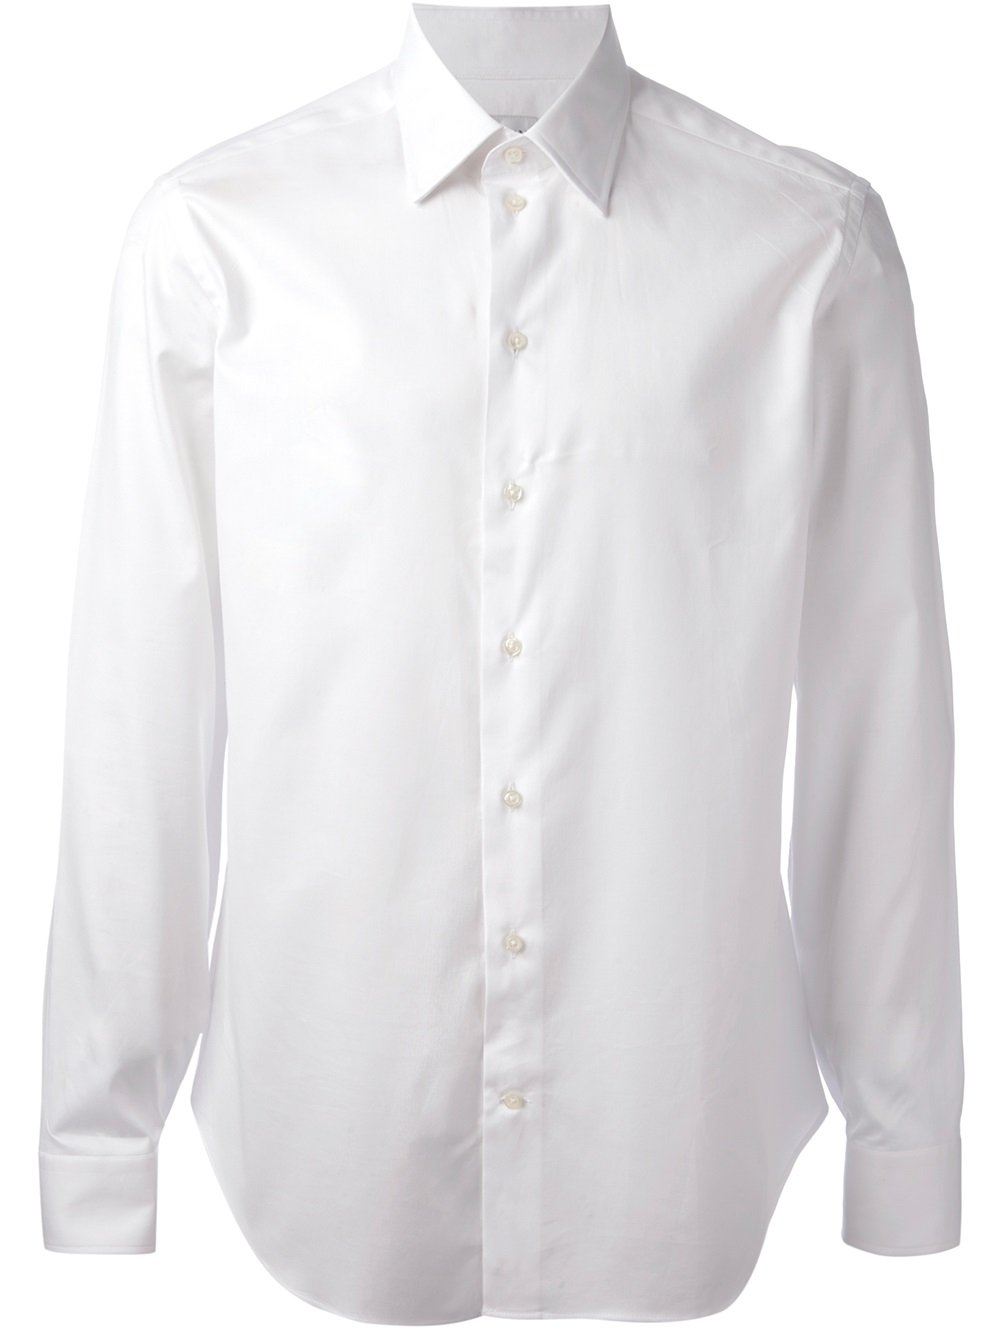 Lyst Armani Collared Shirt In White For Men